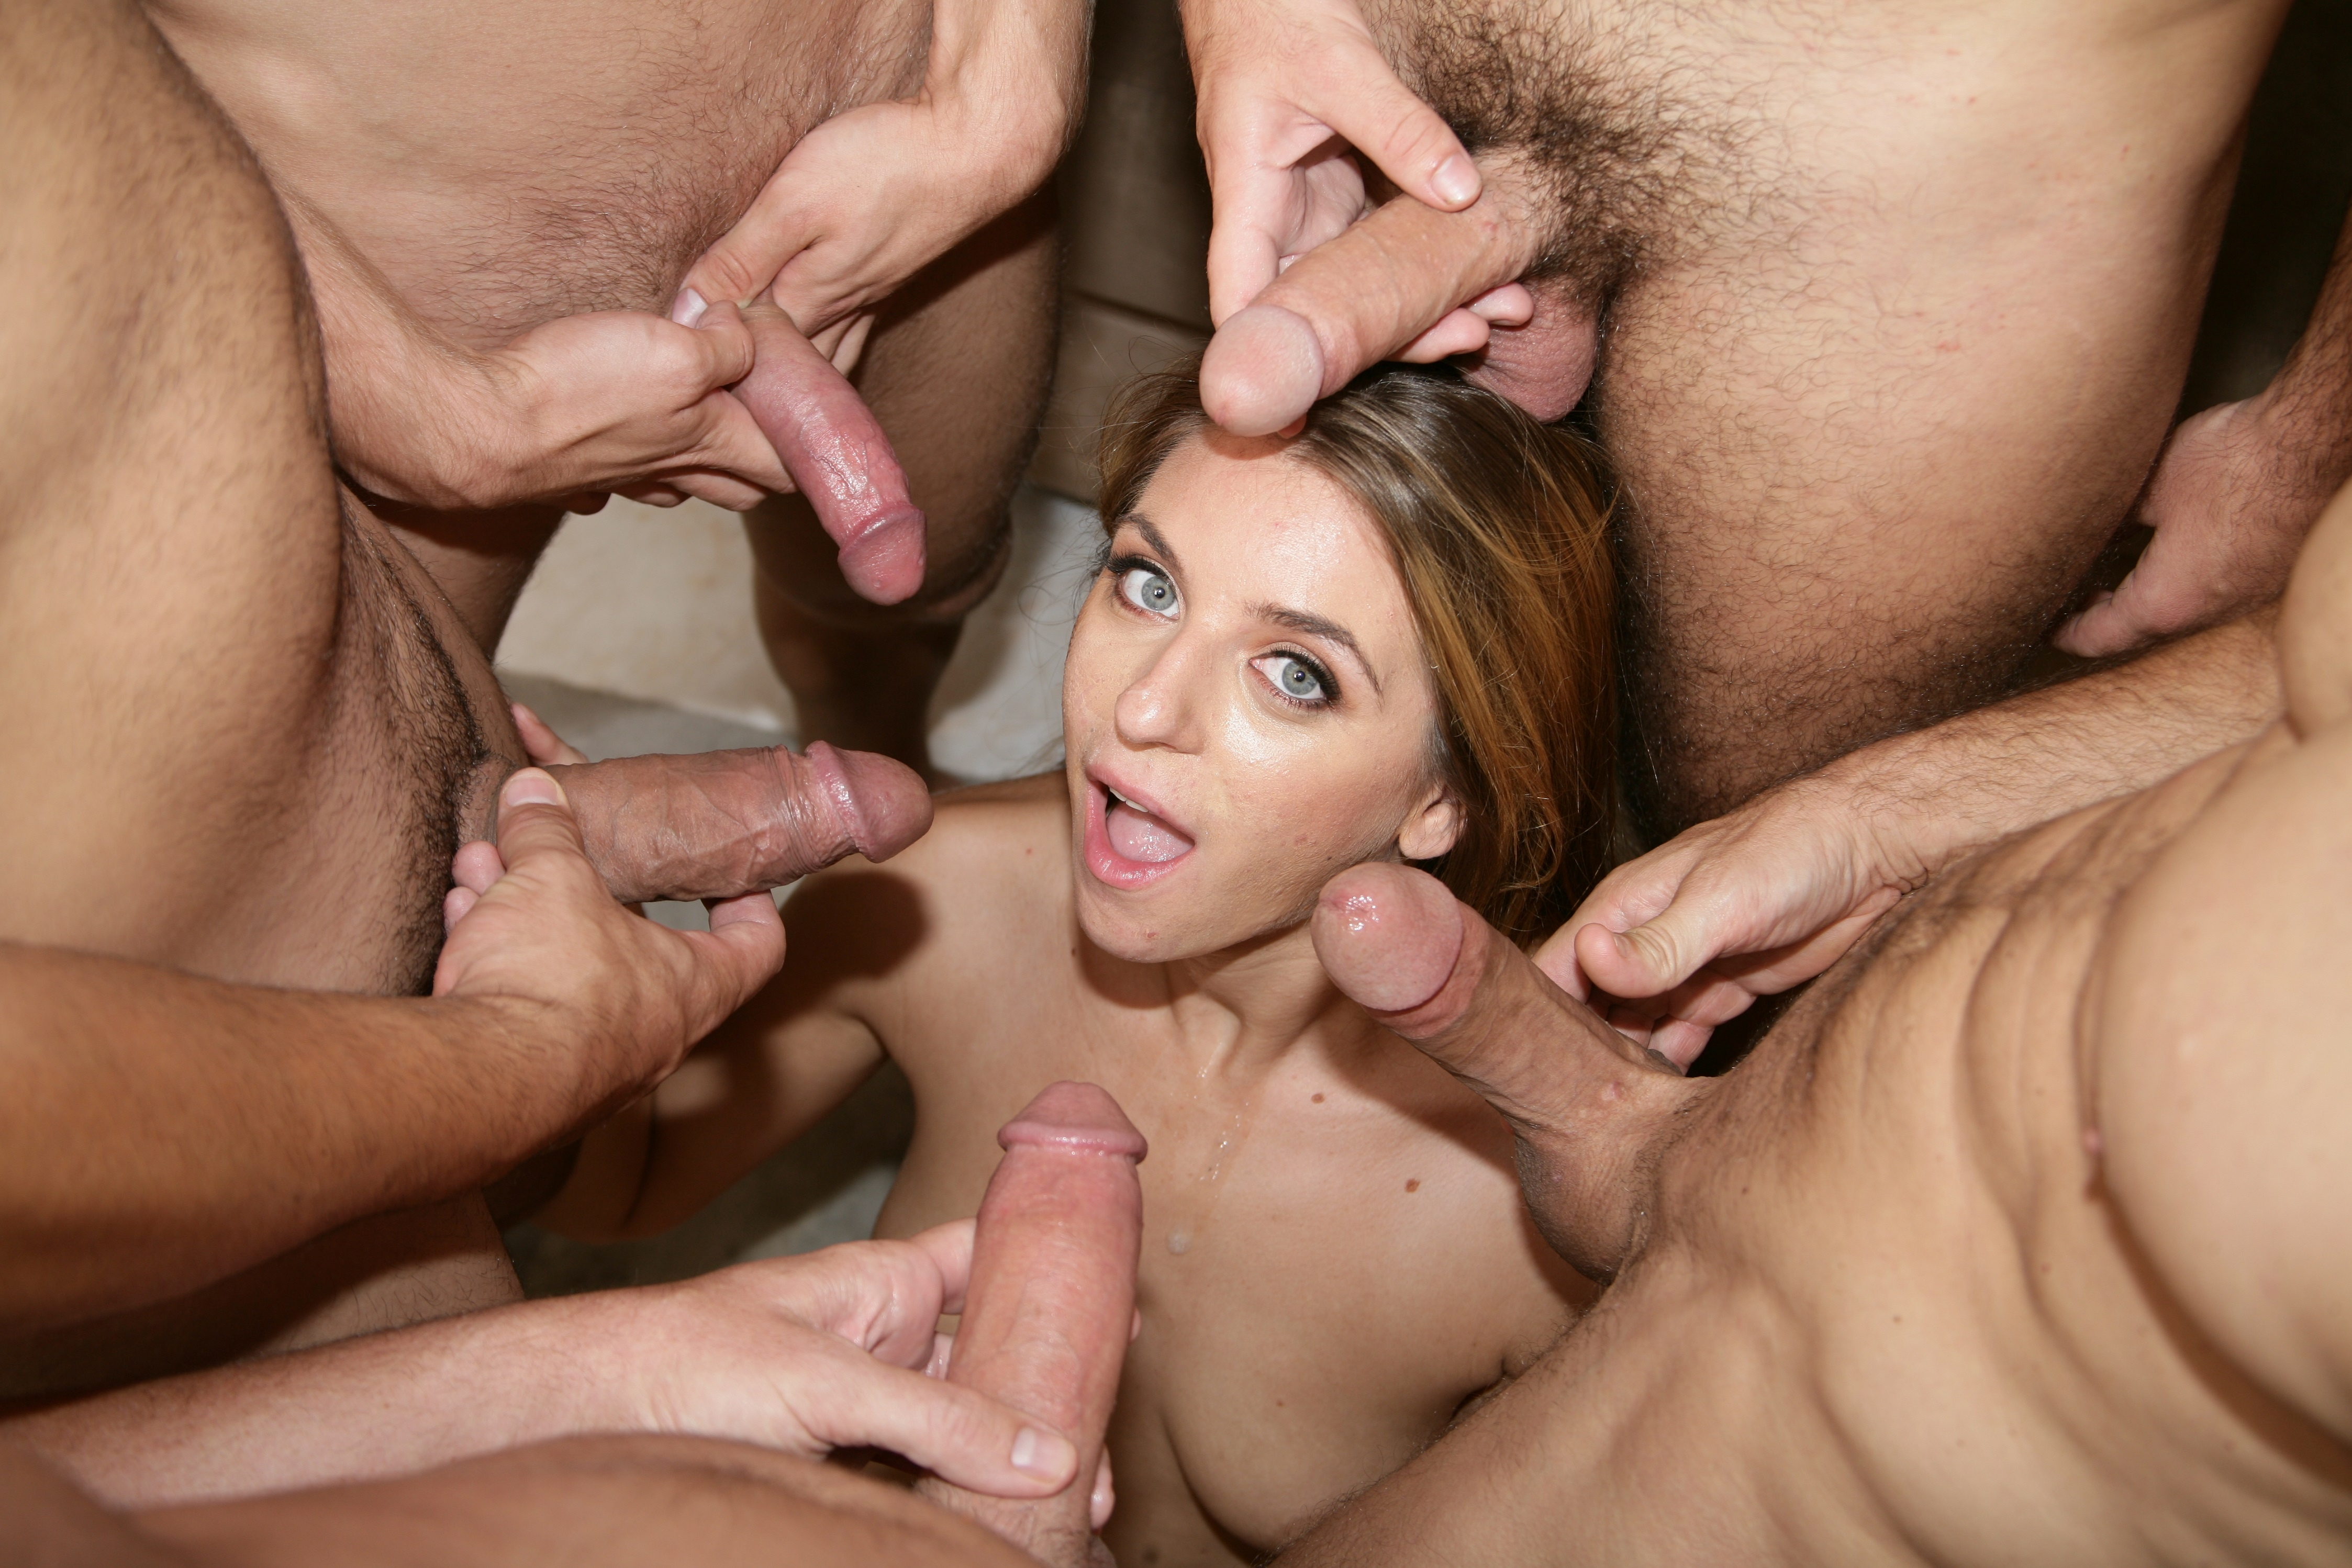 all clear, gangbang shaved masturbate dick load cumm on face similar situation